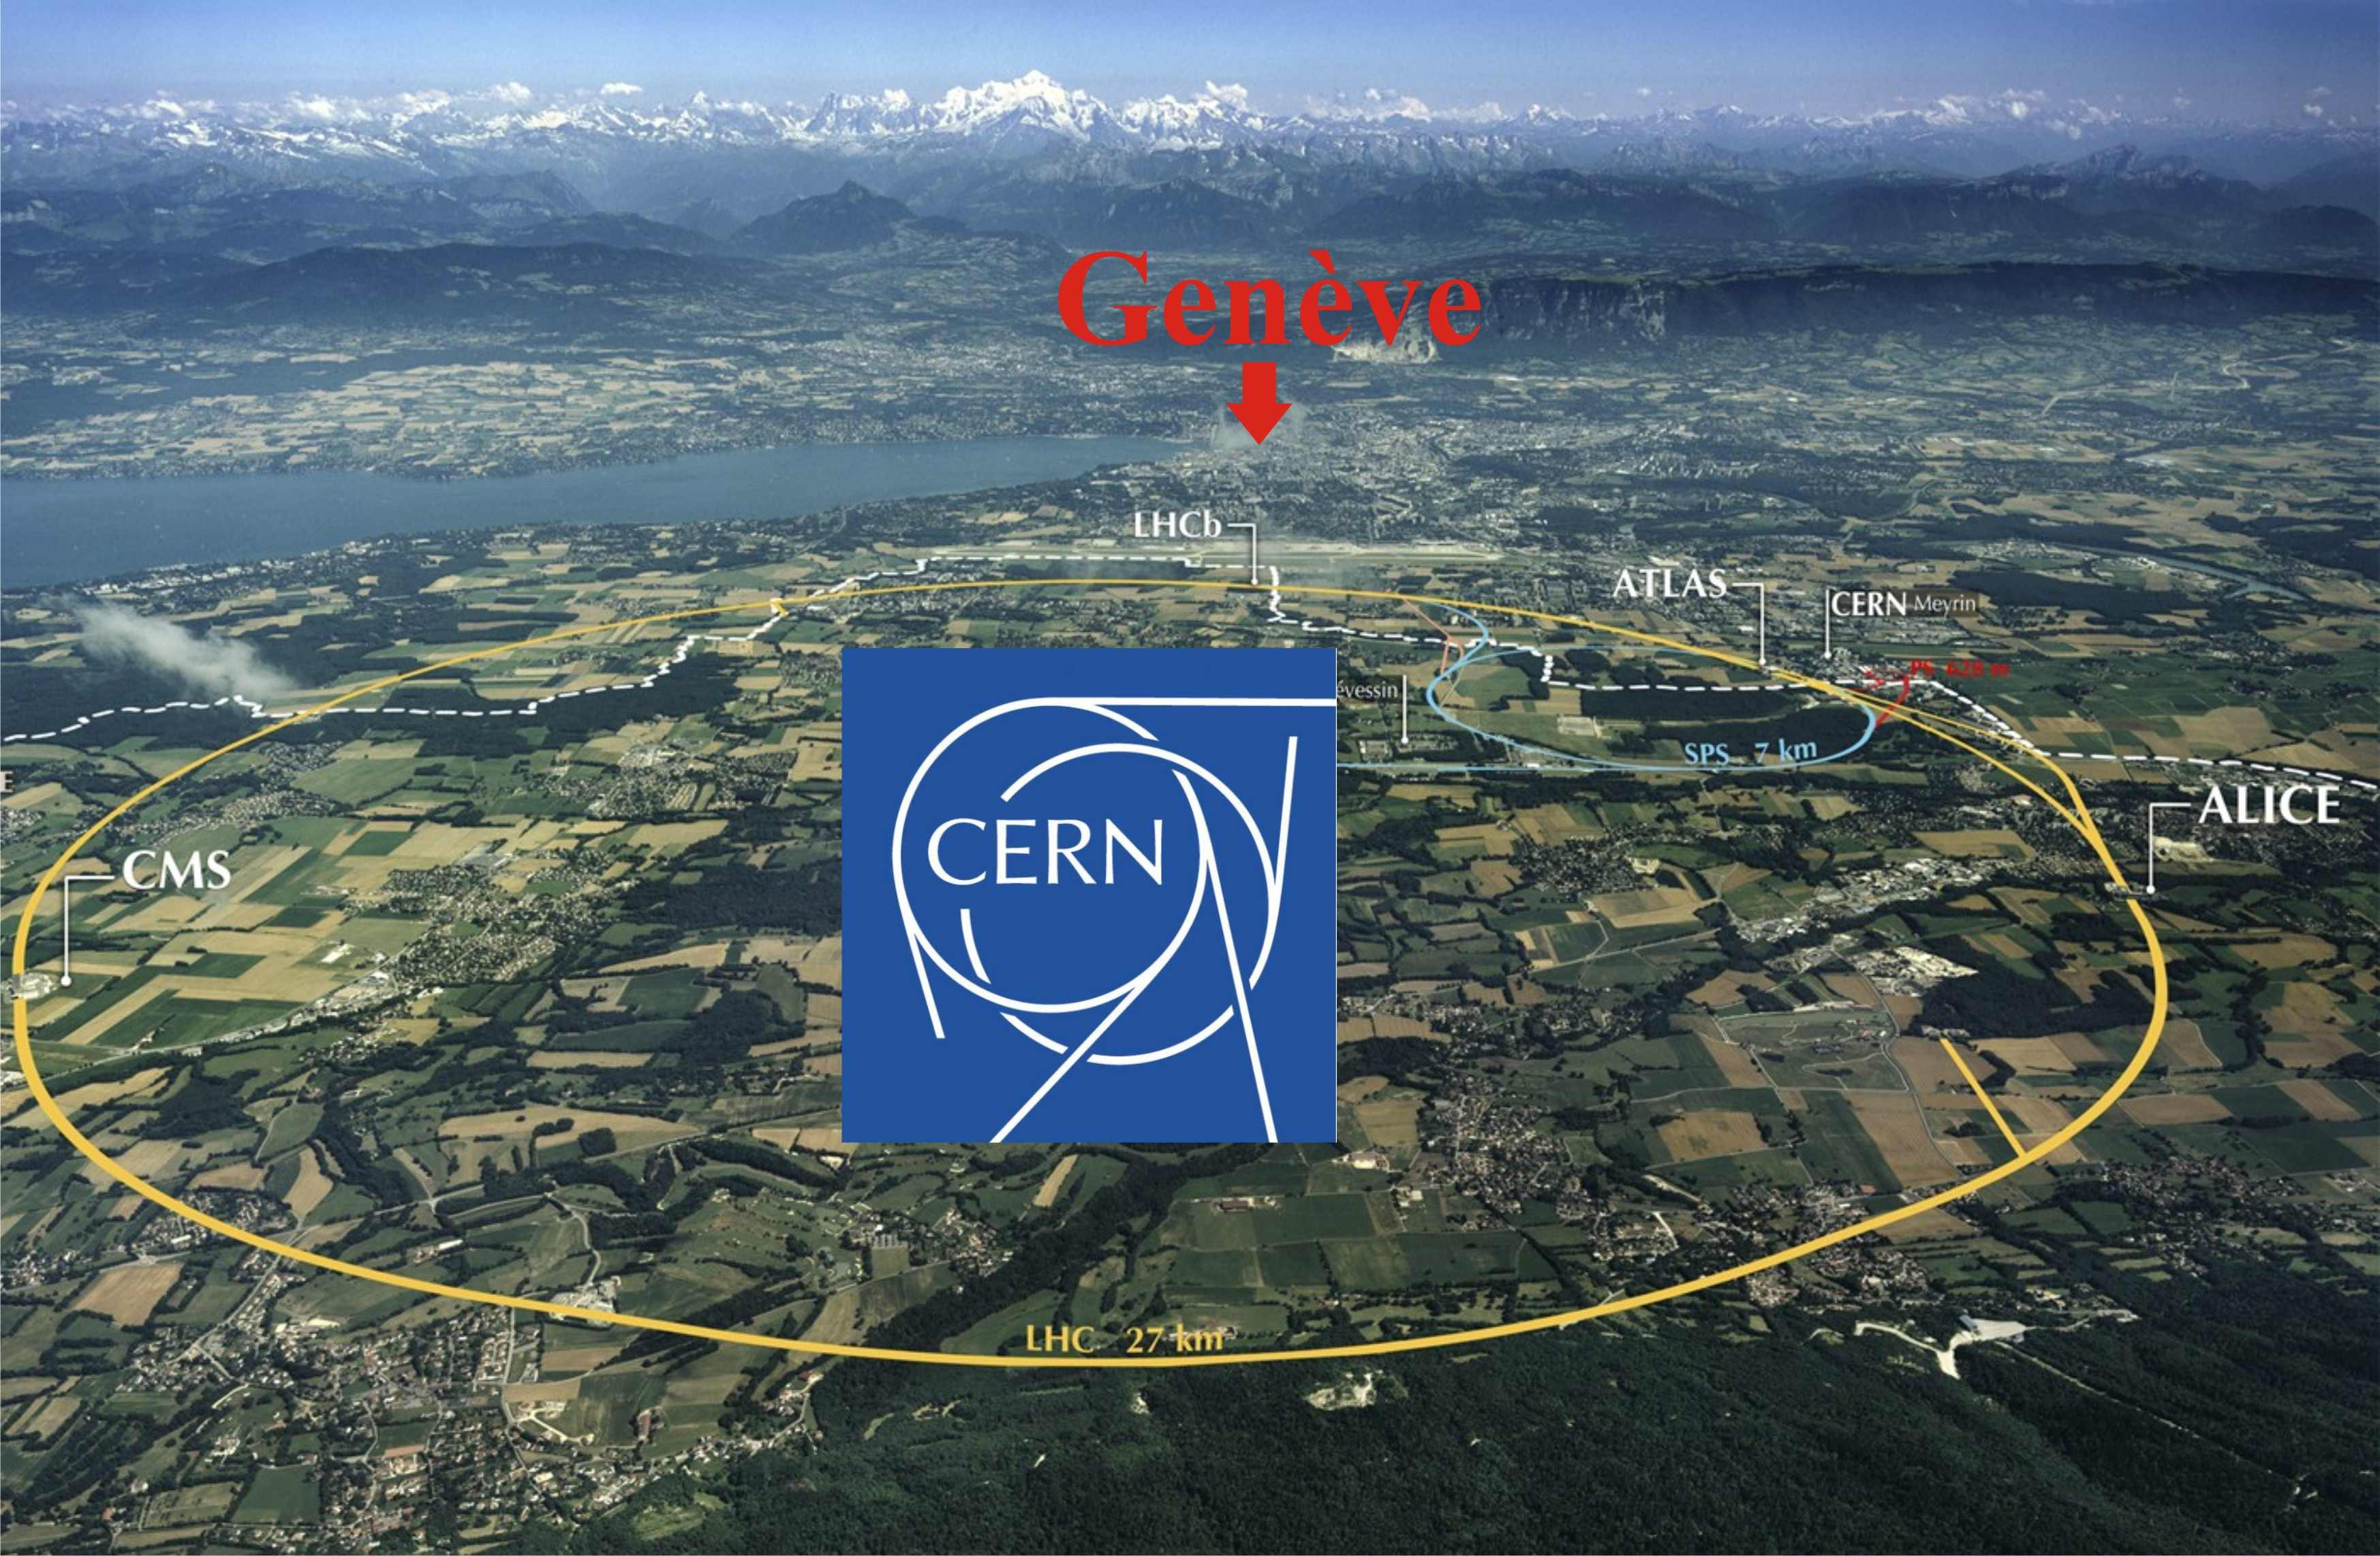 figures/CERN-BE-CO-HT/CERN_intro_0.jpg